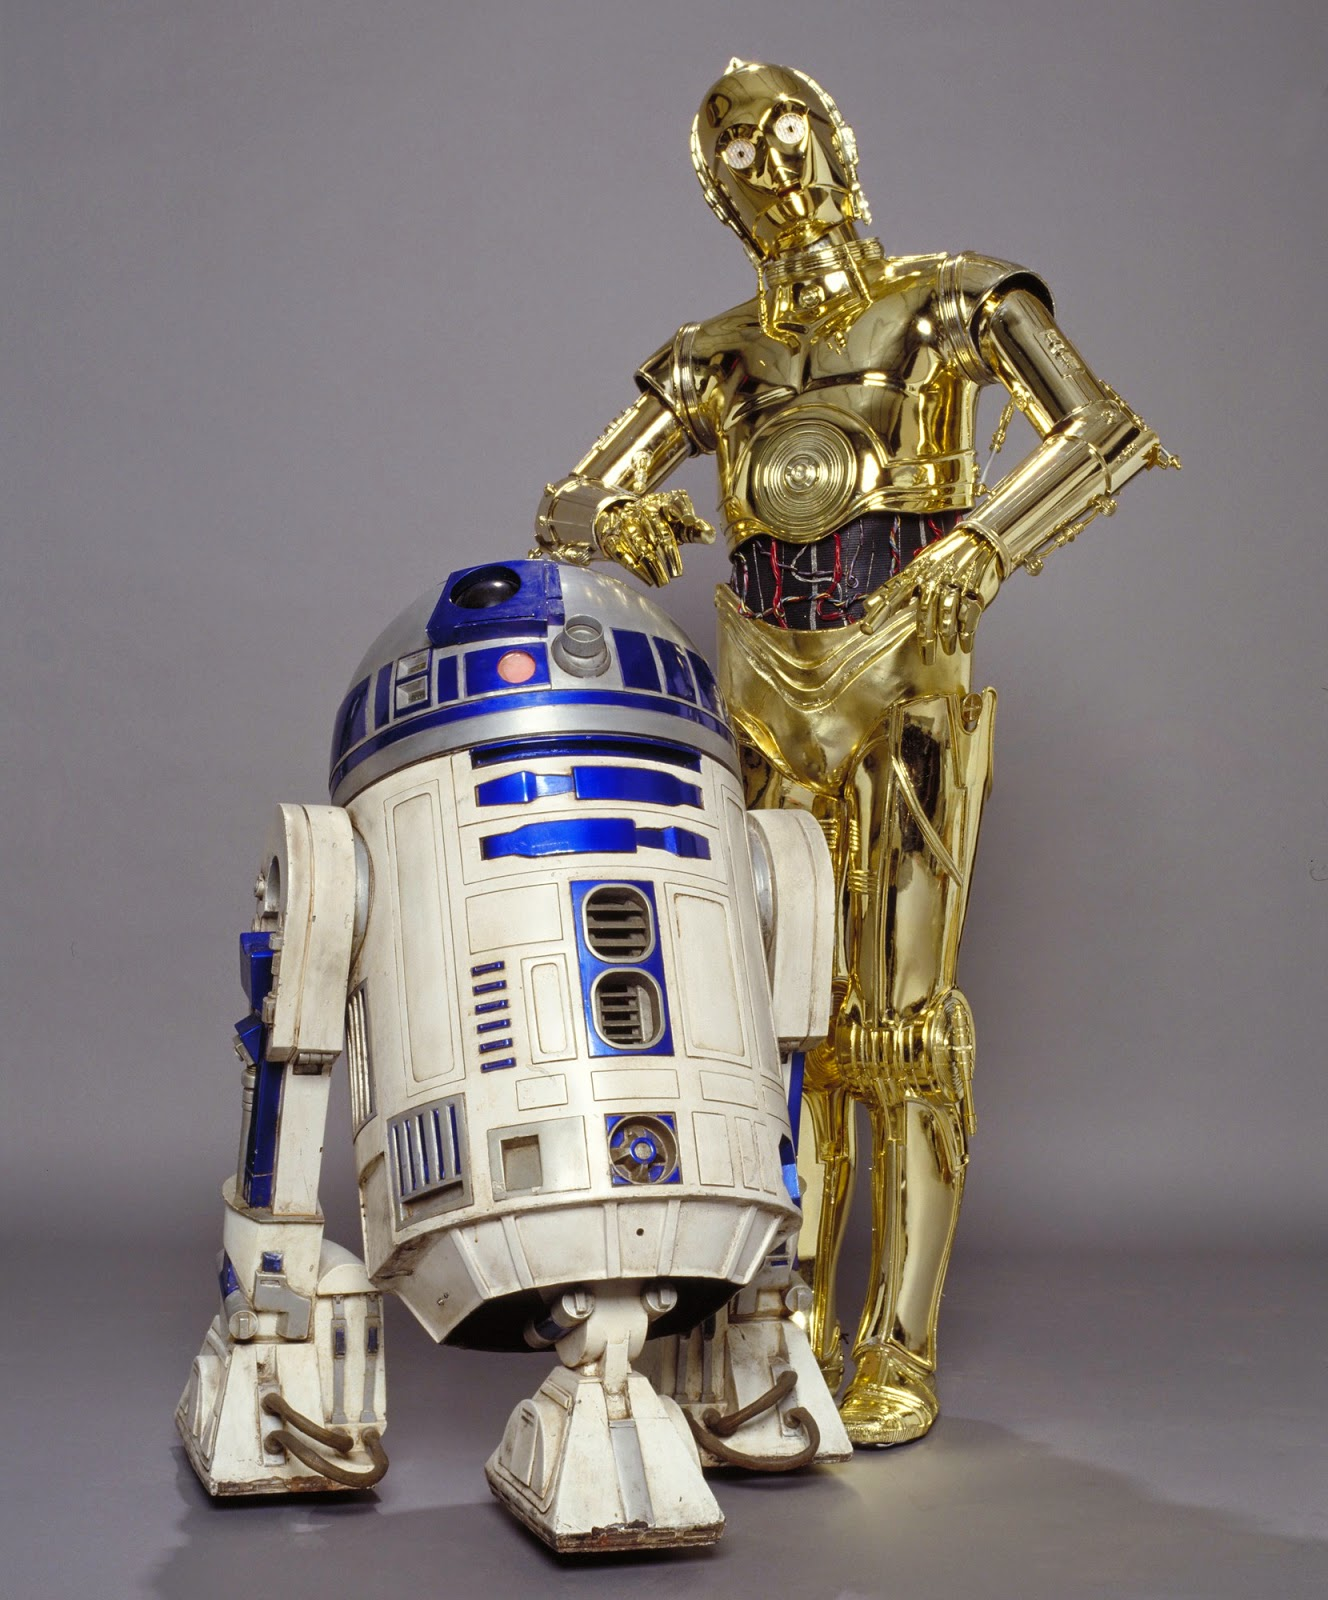 R2d2 And C3po In Movie Doodlecraft: Star Wars...